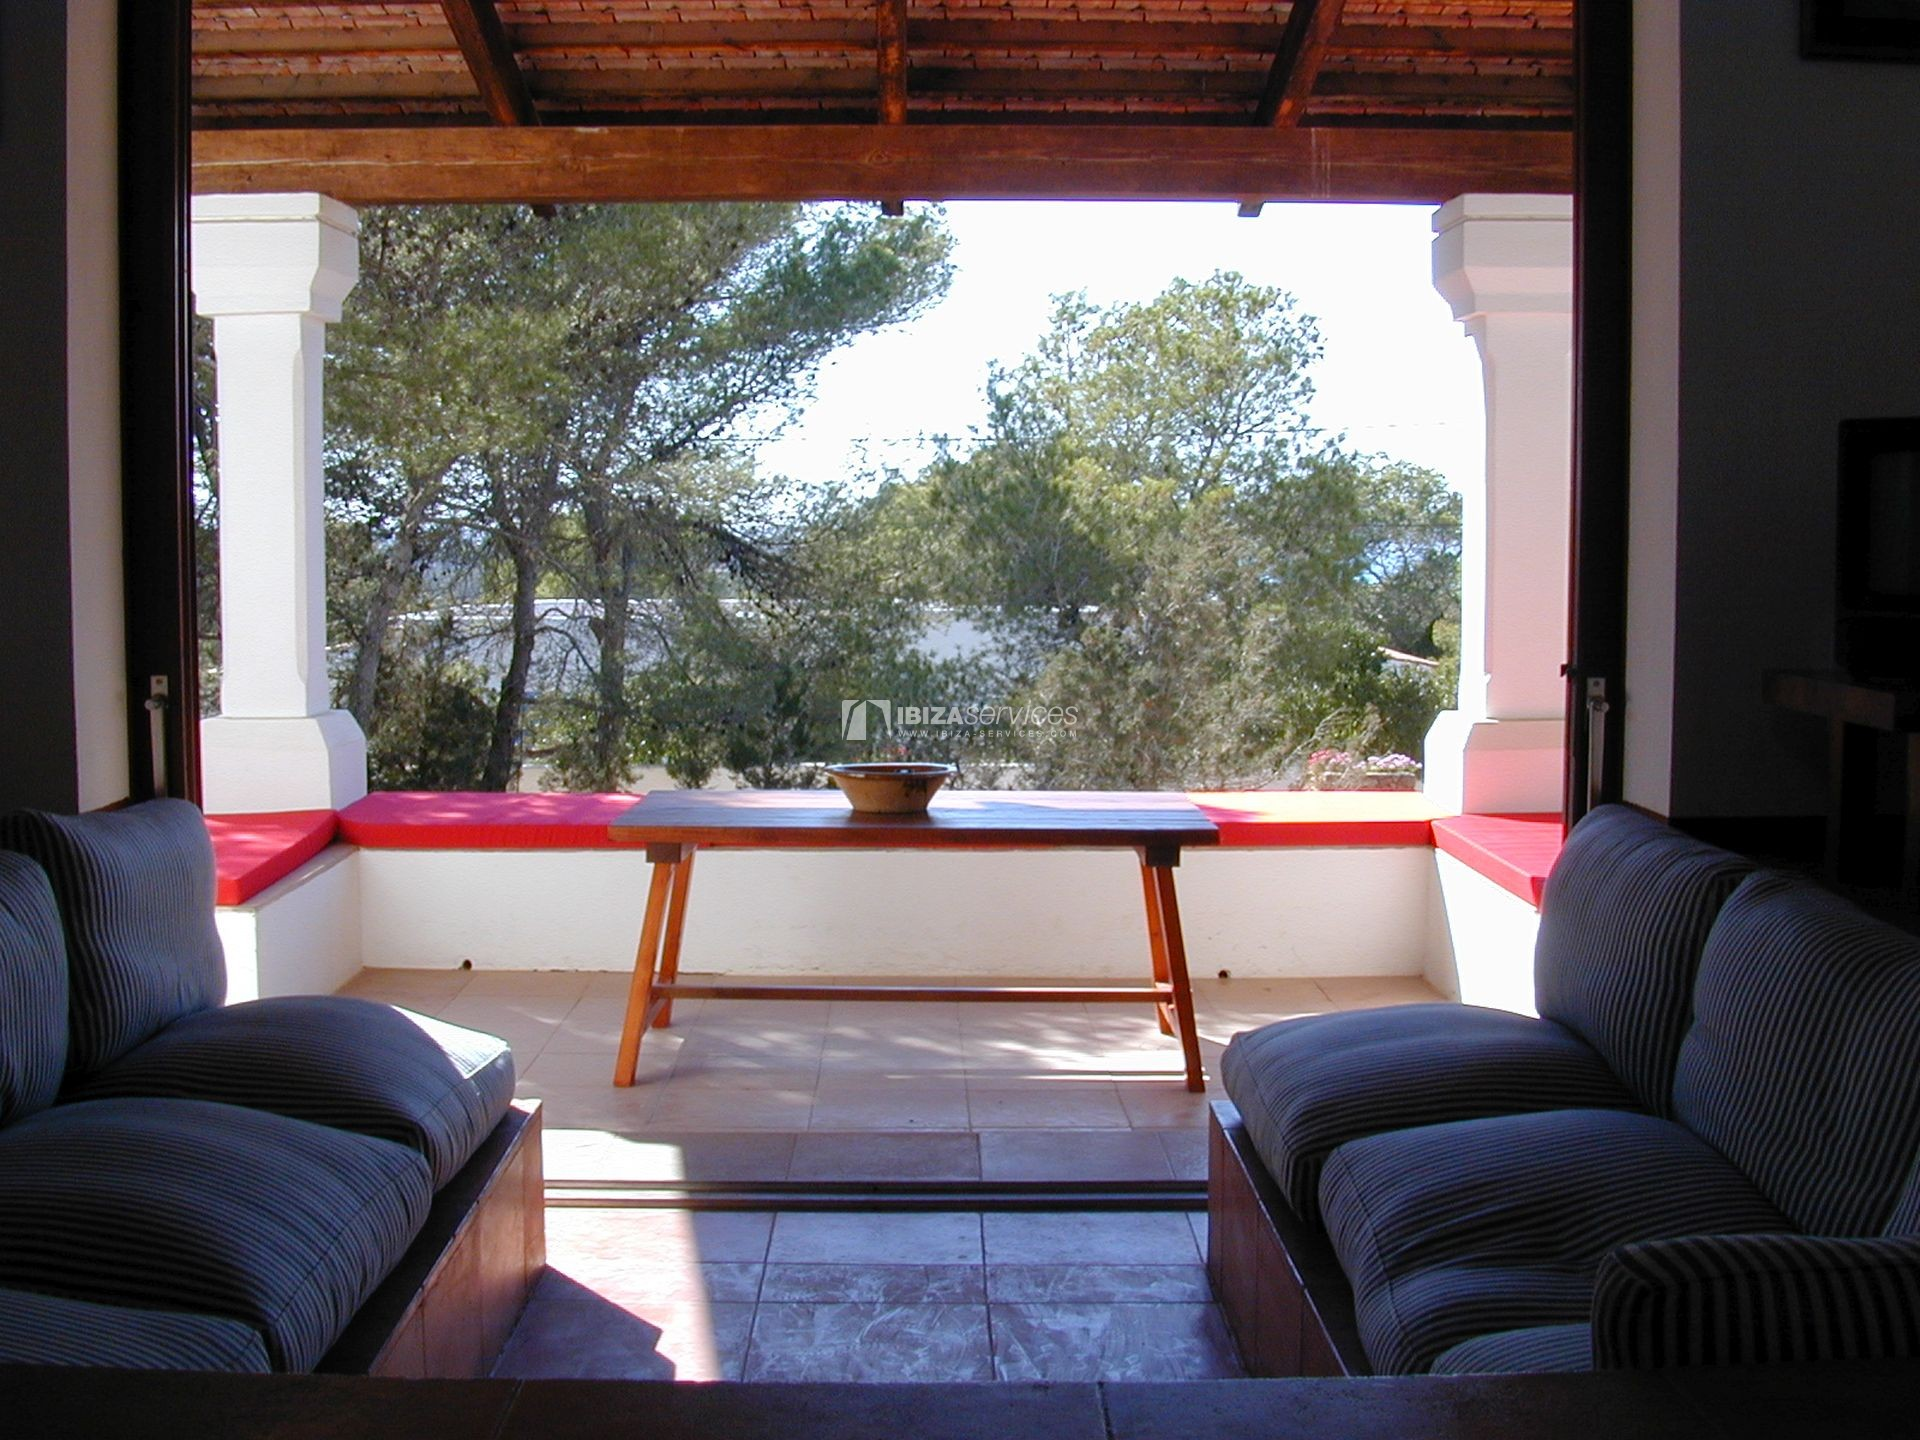 4 bedroom Villa for rent in Formentera perspectiva 31